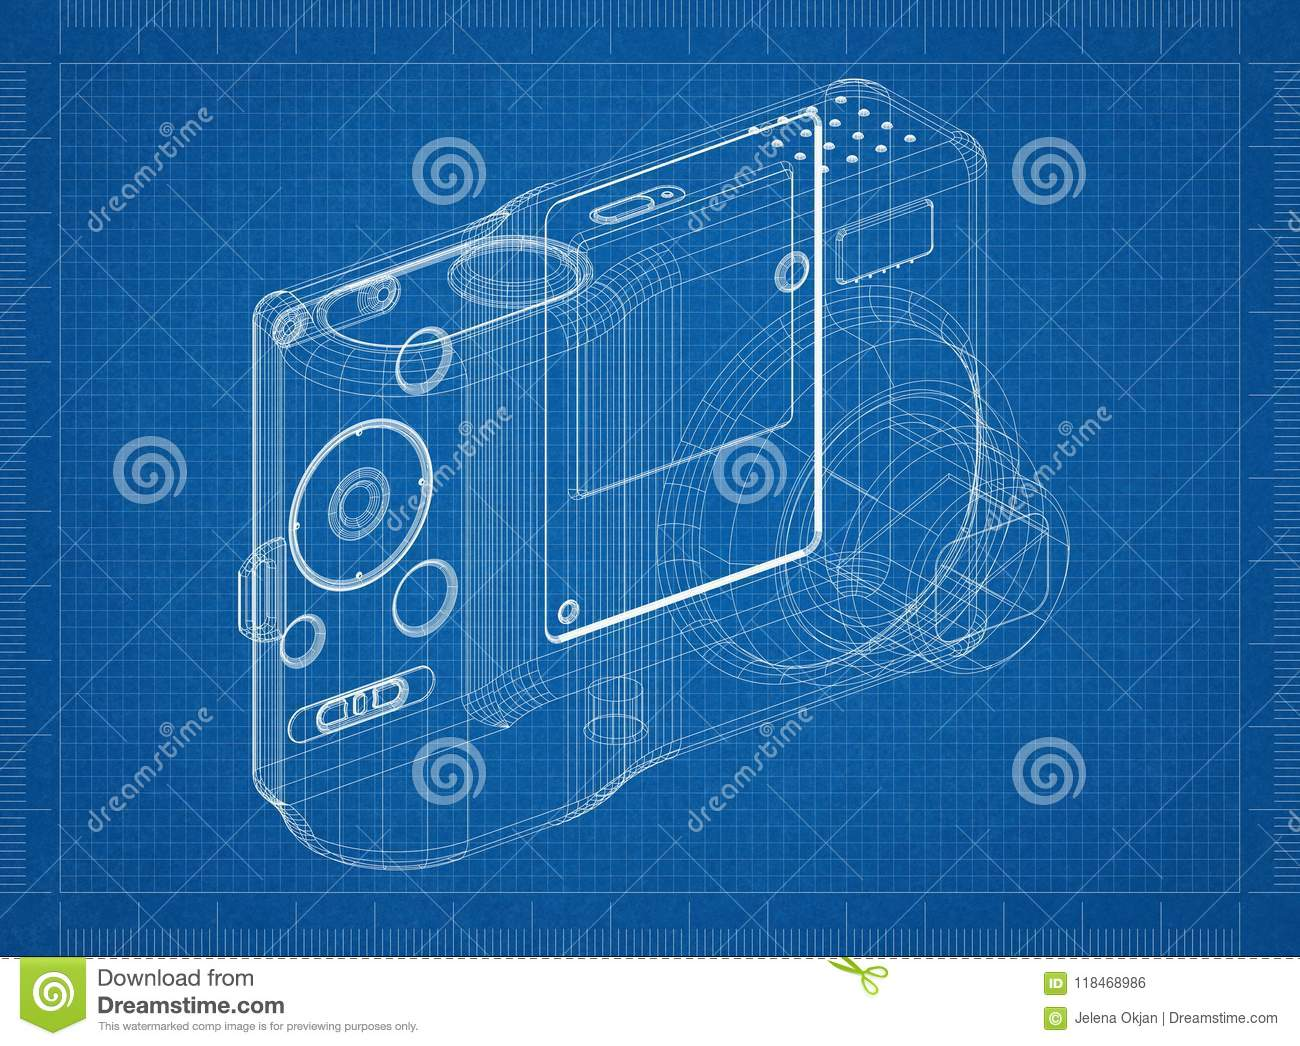 Digital camera architect blueprint isolated stock illustration download comp malvernweather Choice Image